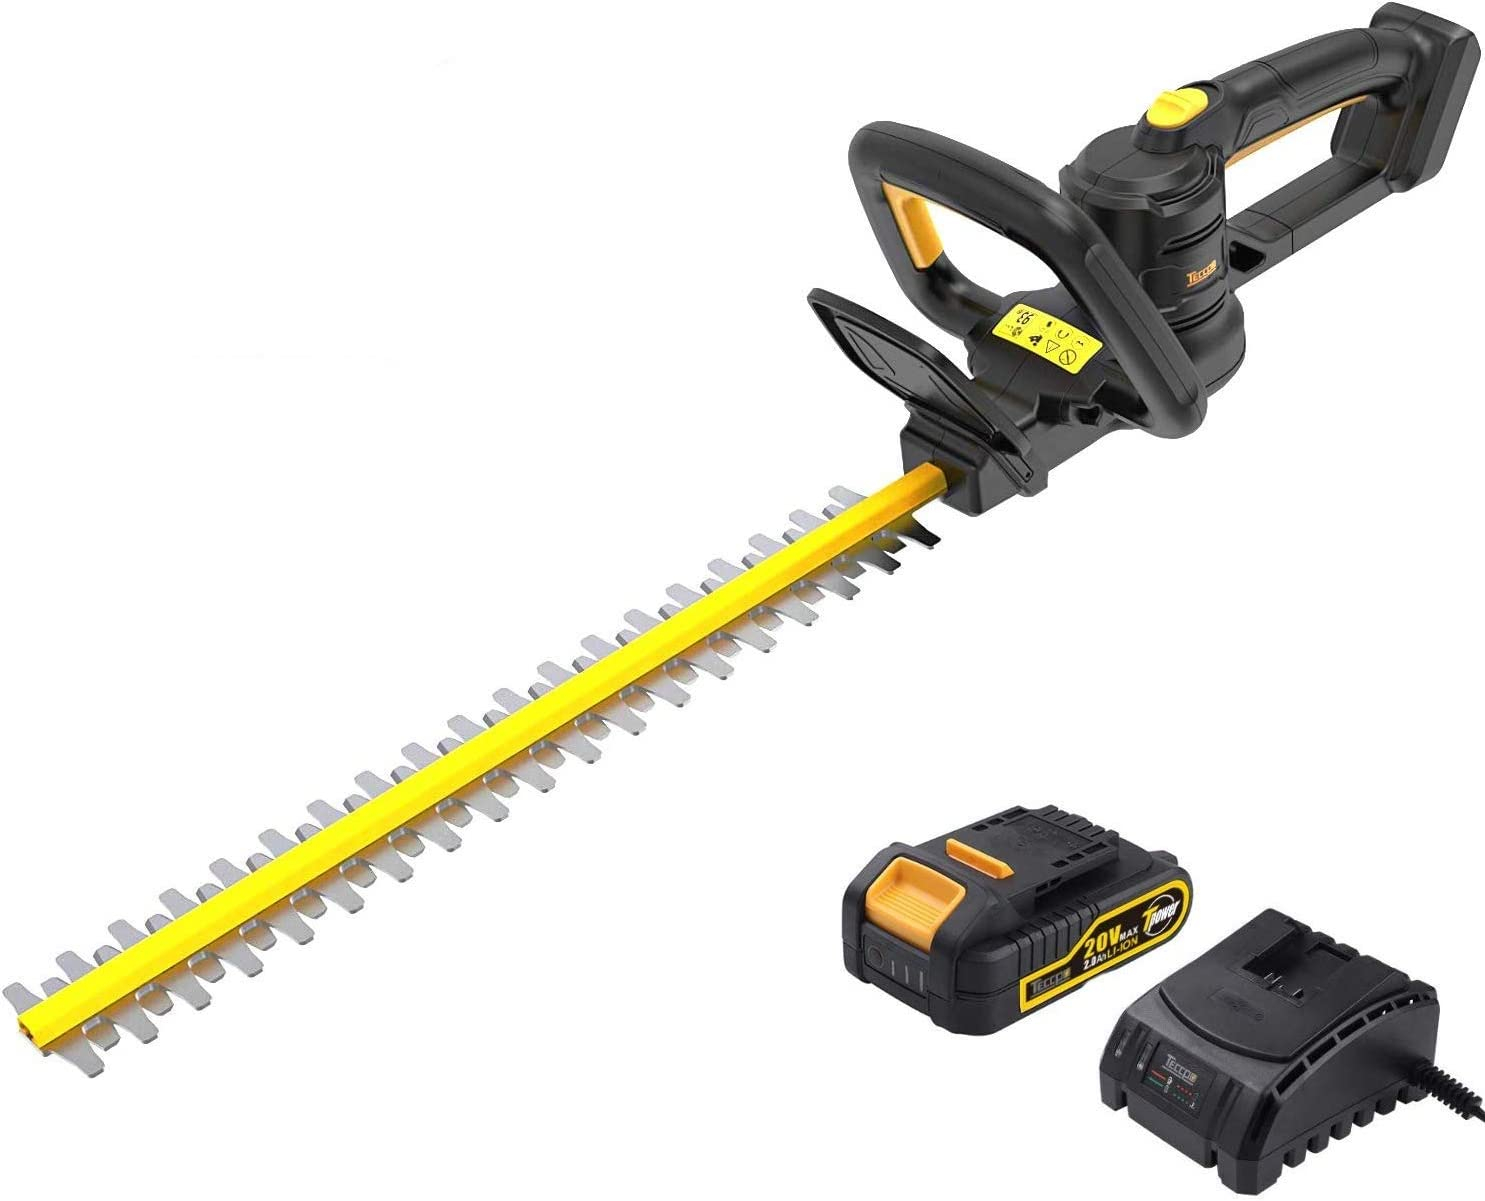 TECCPO 20V Cordless Hedge Trimmer, 20-Inch Blade Length, 3 4-Inch Cutting Thickness, Dual Action Laser Blade, Triple Safety Start Button, Battery and Charger Included – TDHT02G